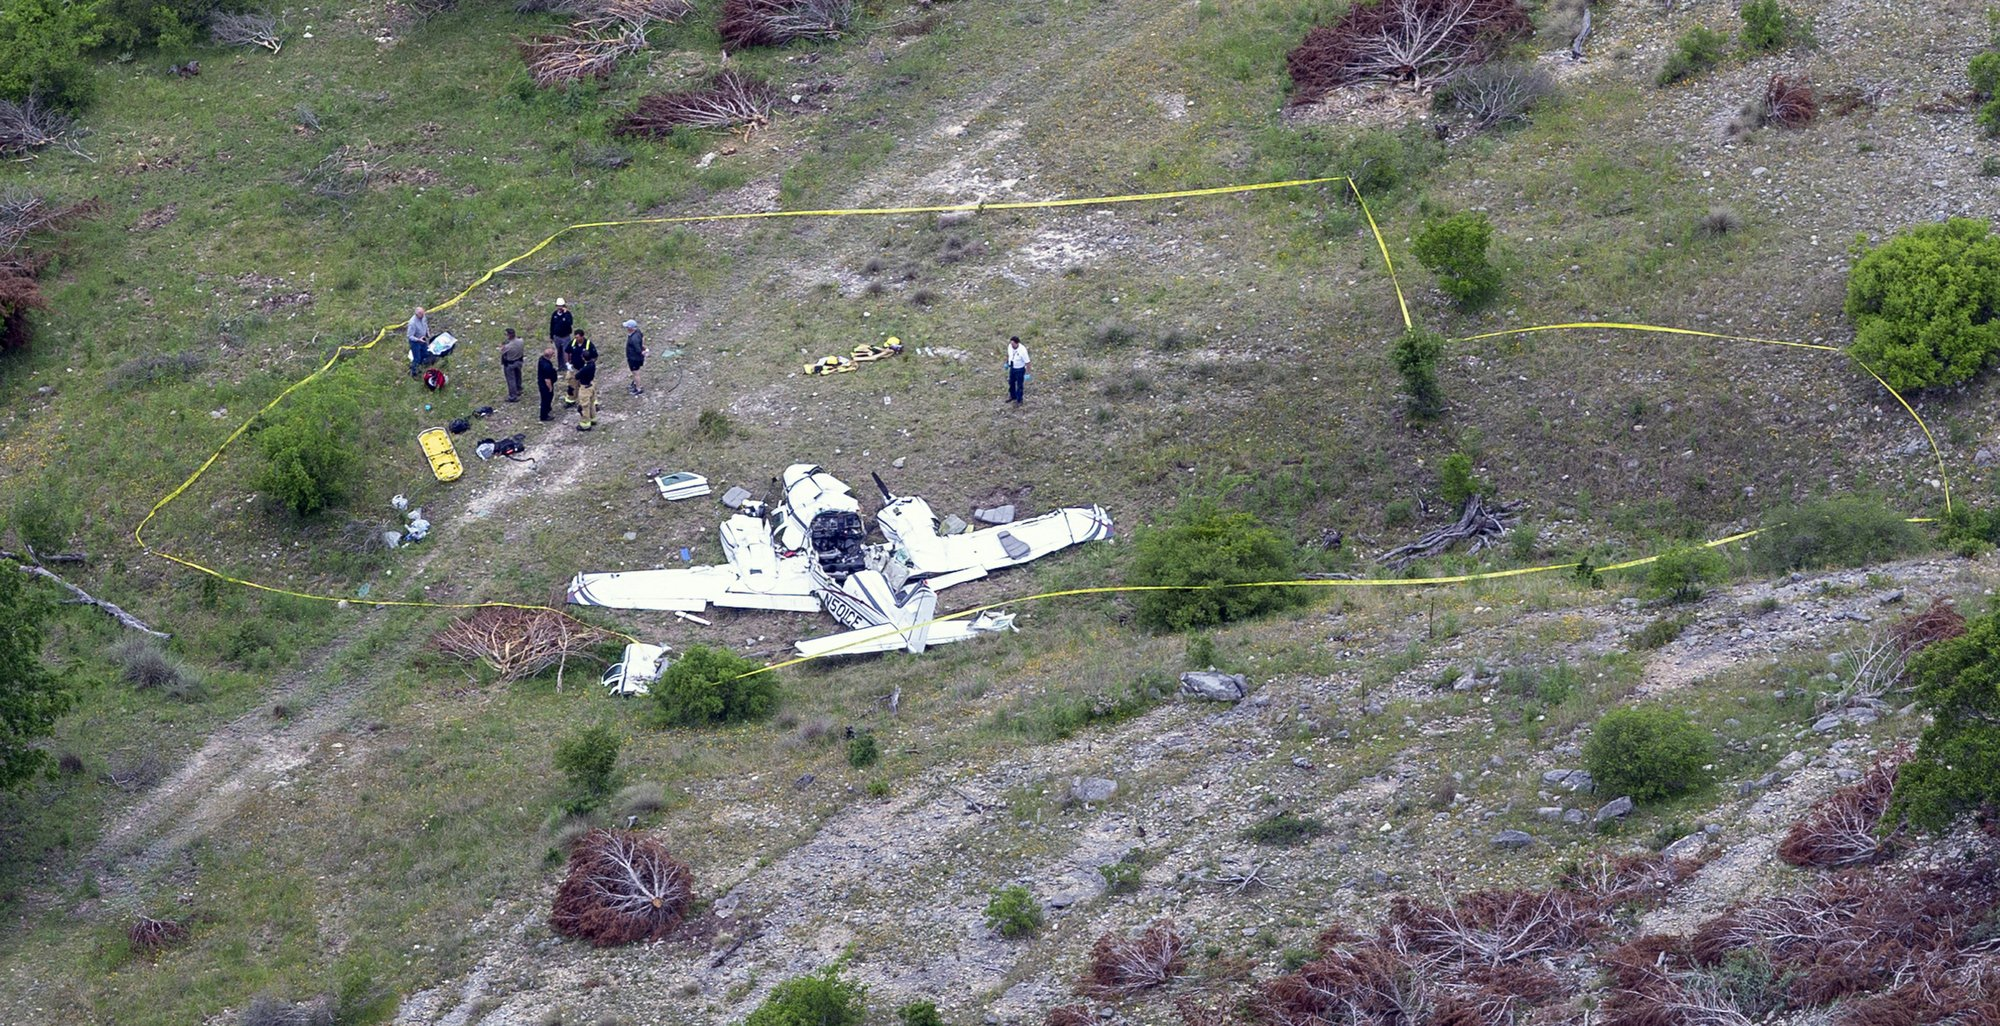 US officials say 6 people died in Texas small plane crash